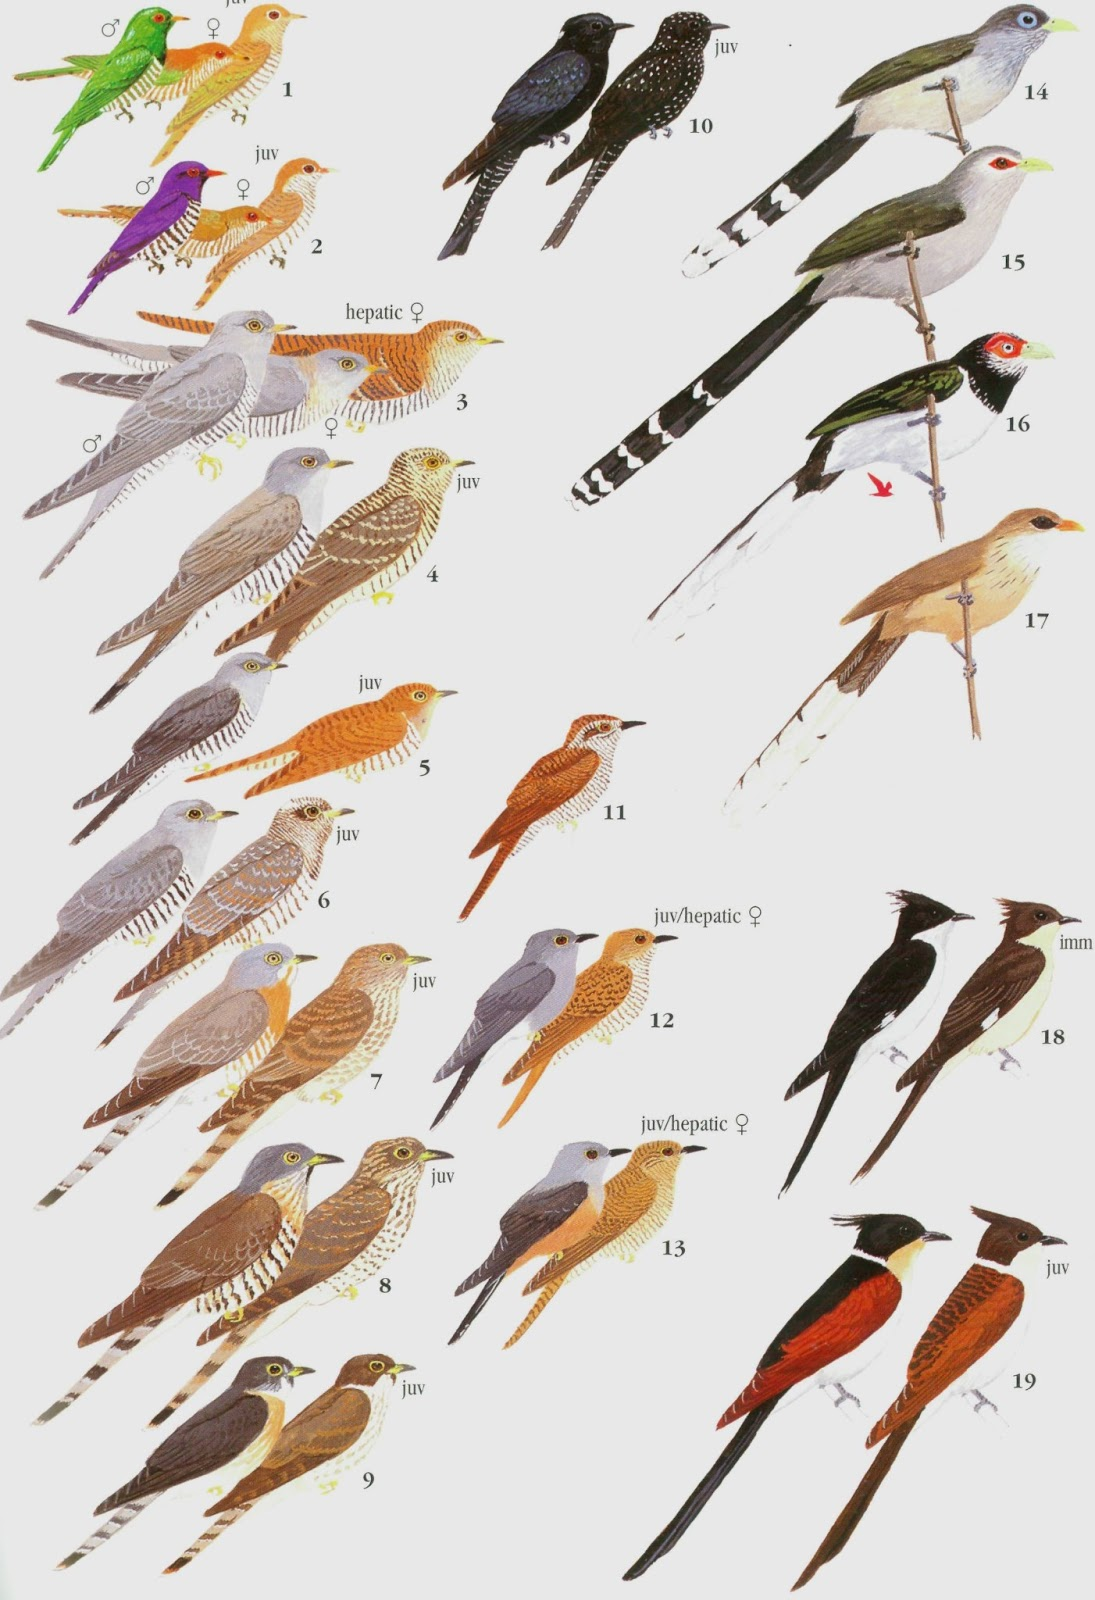 amature naturalist members of cuckoo family plate from birds of by krys kazmierzak